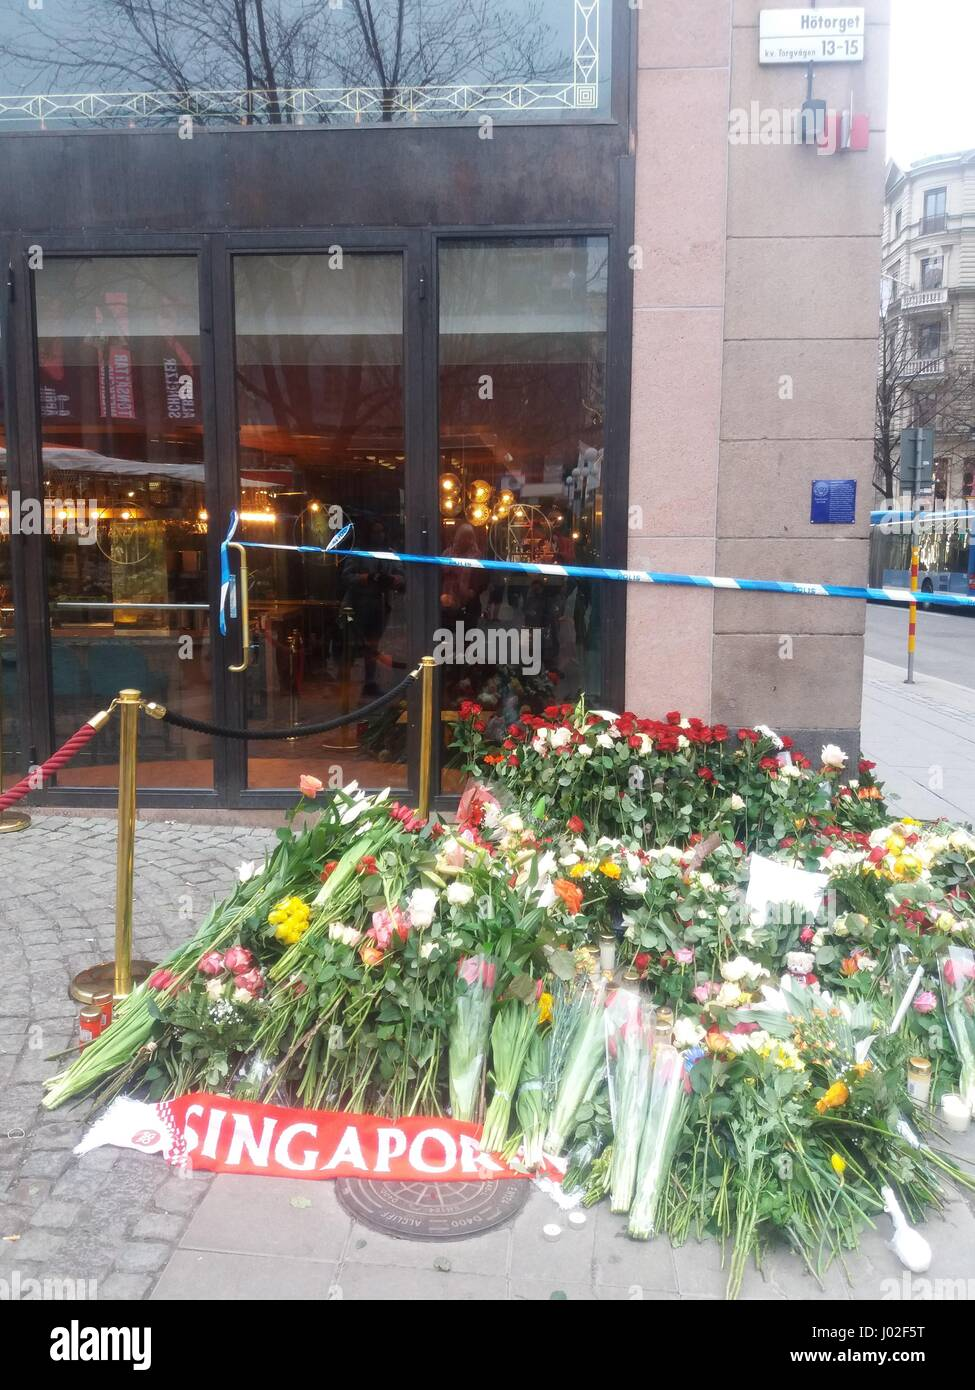 A stack of flowers pilledup in the evacuated Hotorget street in central Stockholm during police investigations in - Stock Image